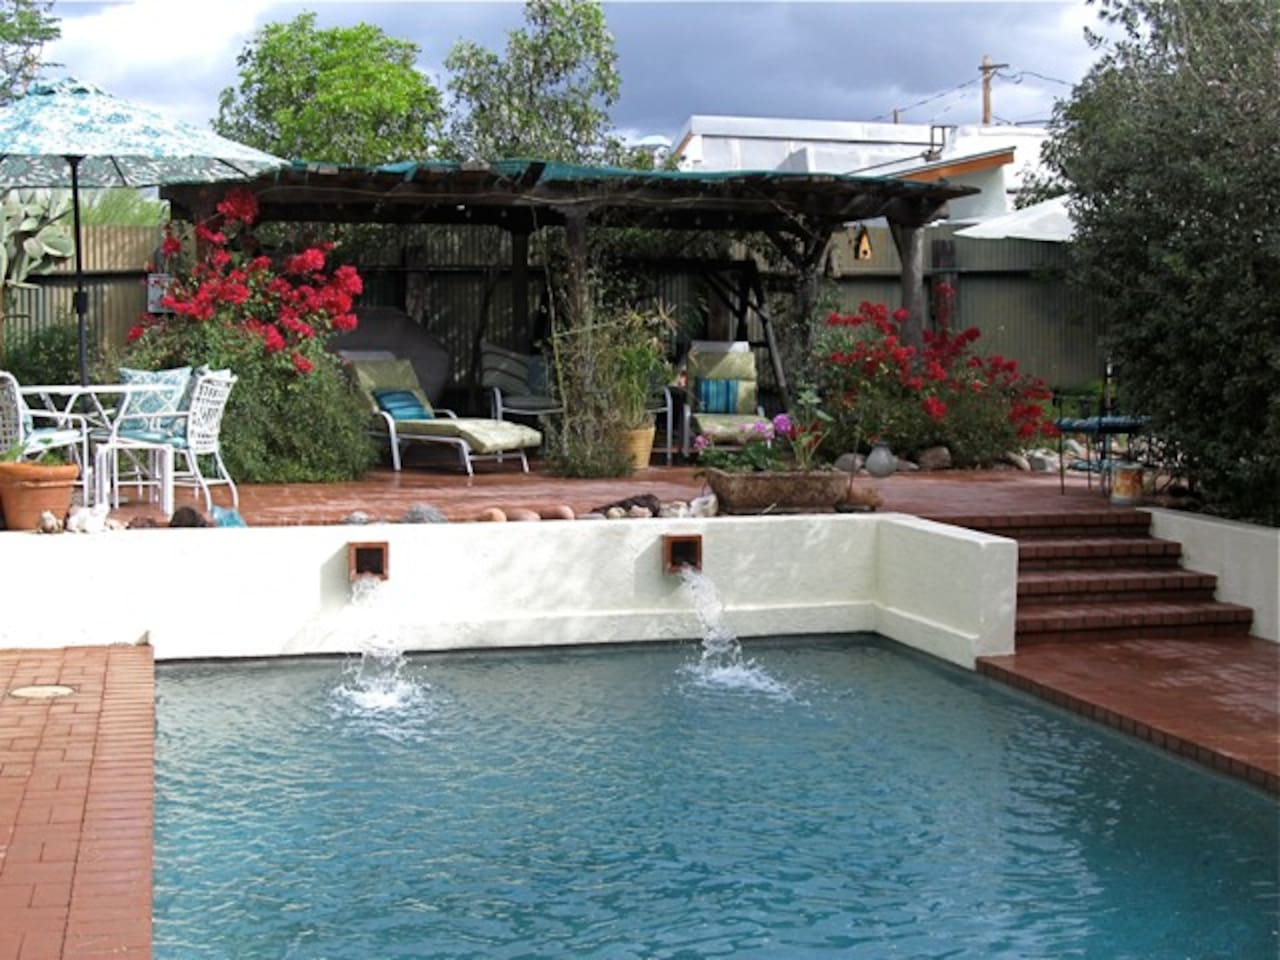 The pool and cabana area are just through the back gate and a wonderful, relaxing oasis. For Airbnb guests only, it's wonderfully relaxing and cool on a hot day. The Koi pond and waterfall is by the cabana as well.